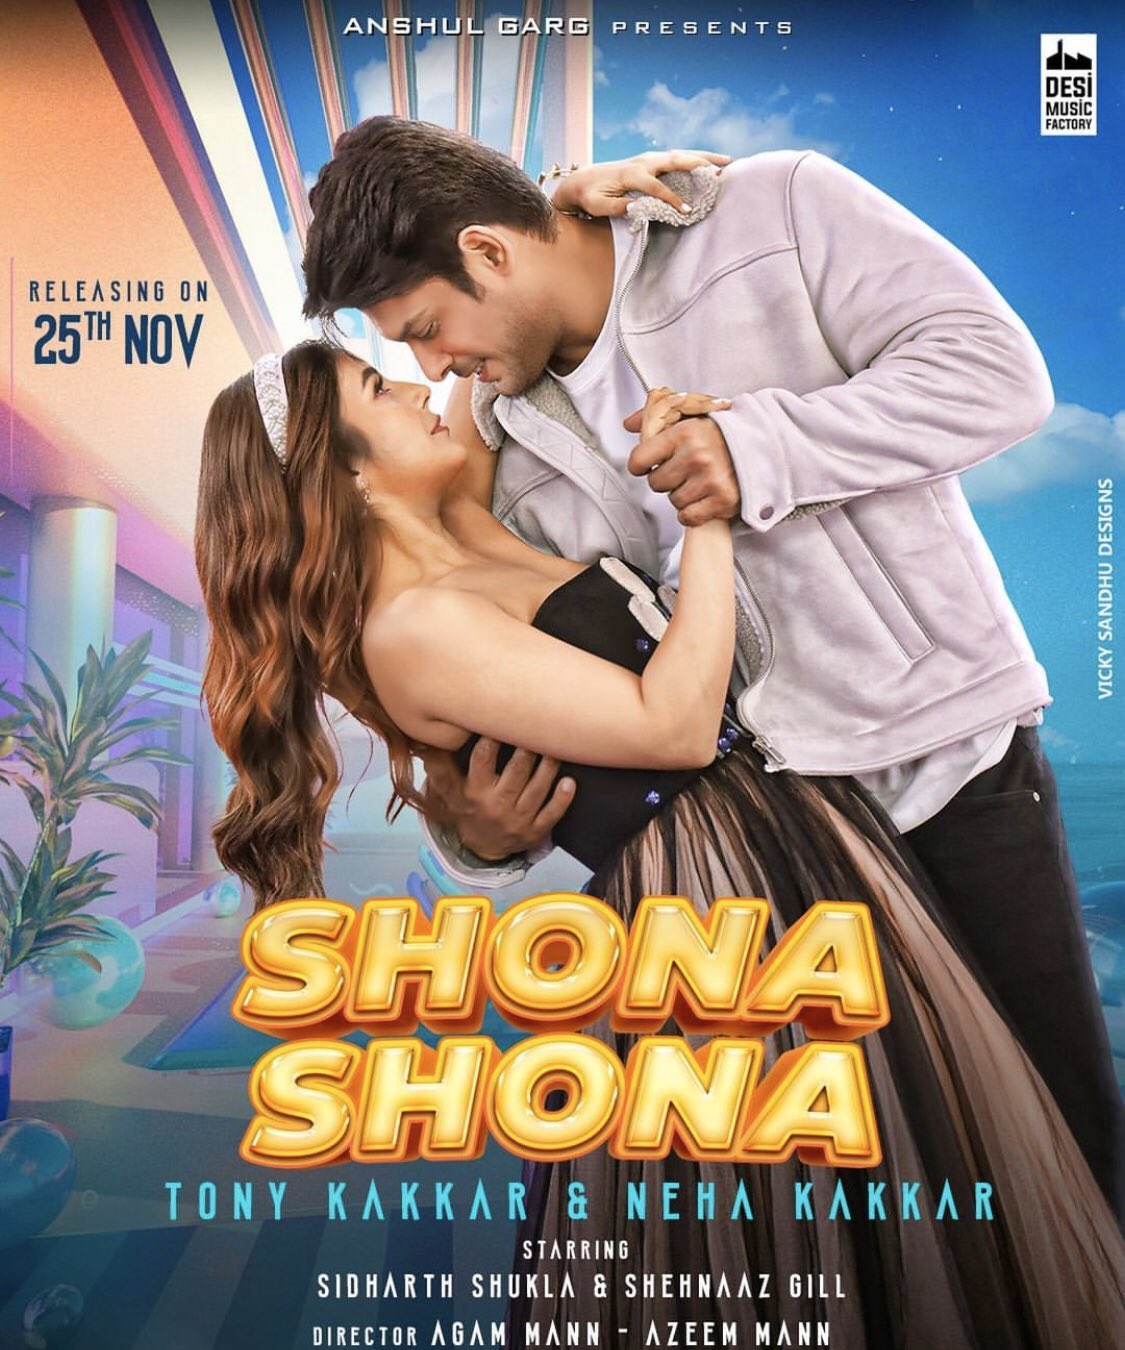 Shona Shona By Tony Kakkar & Neha Kakkar Hindi Full Music Video 1080p HDRip 83MB Download